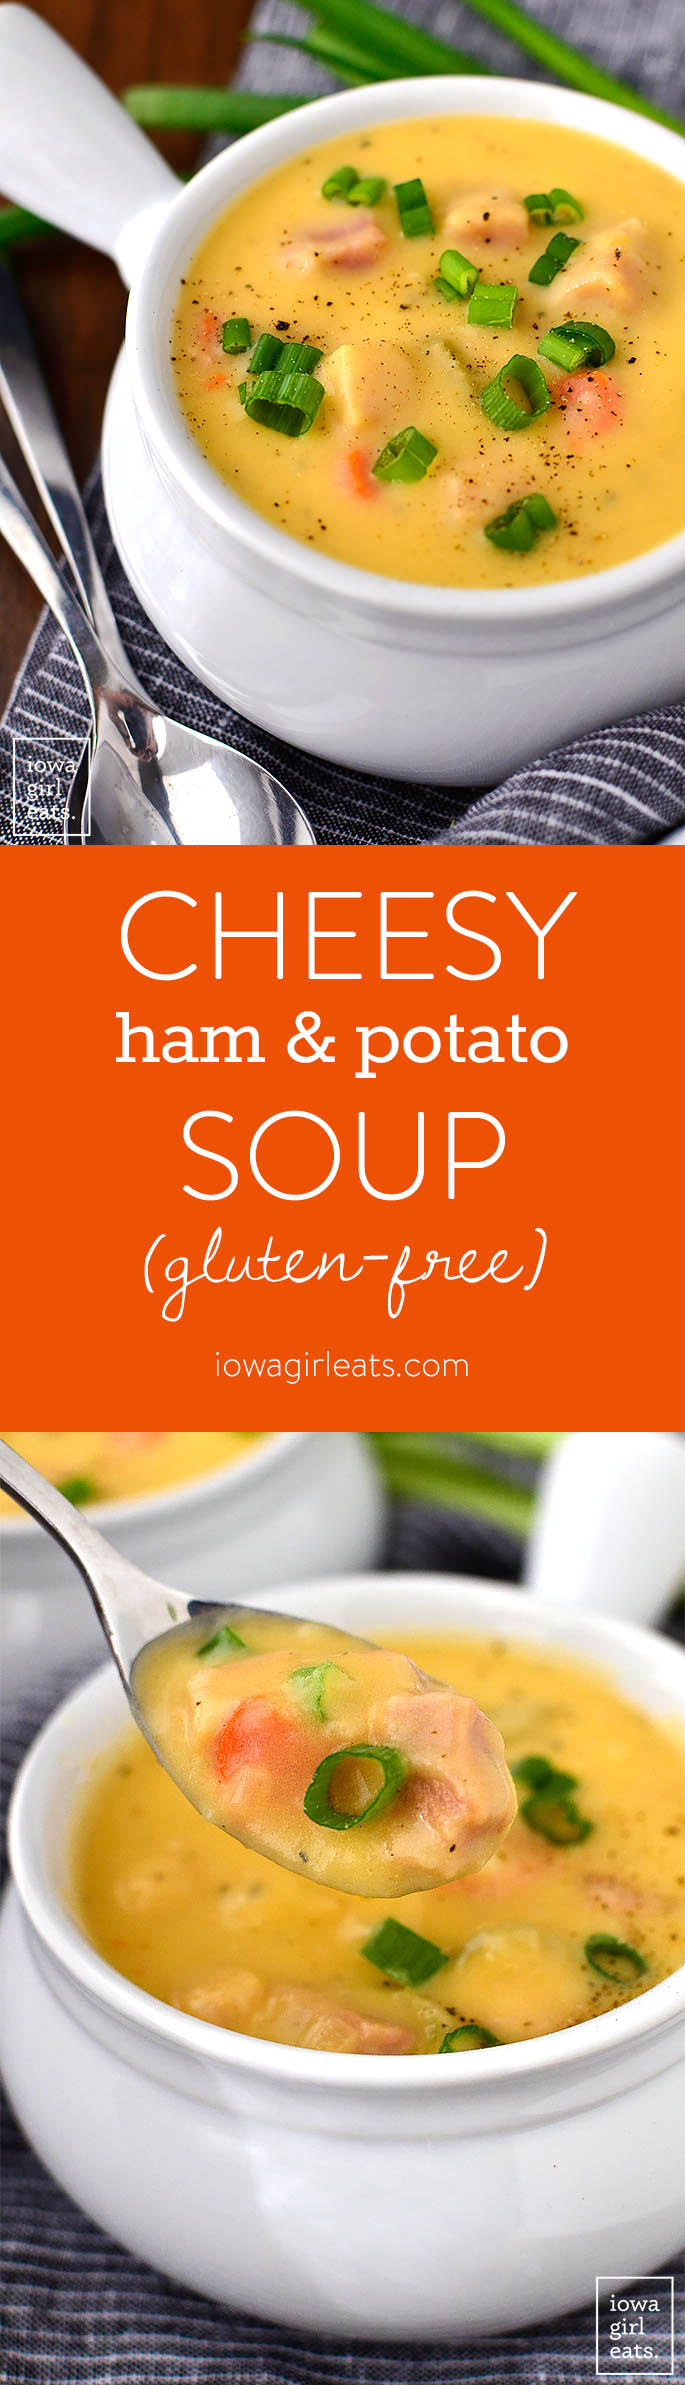 Cheesy Ham and Potato Soup is a thick and hearty gluten-free soup recipe that's perfect for cold nights. Use leftover ham and mashed potatoes to make this simple soup even easier to whip up! | iowagirleats.com